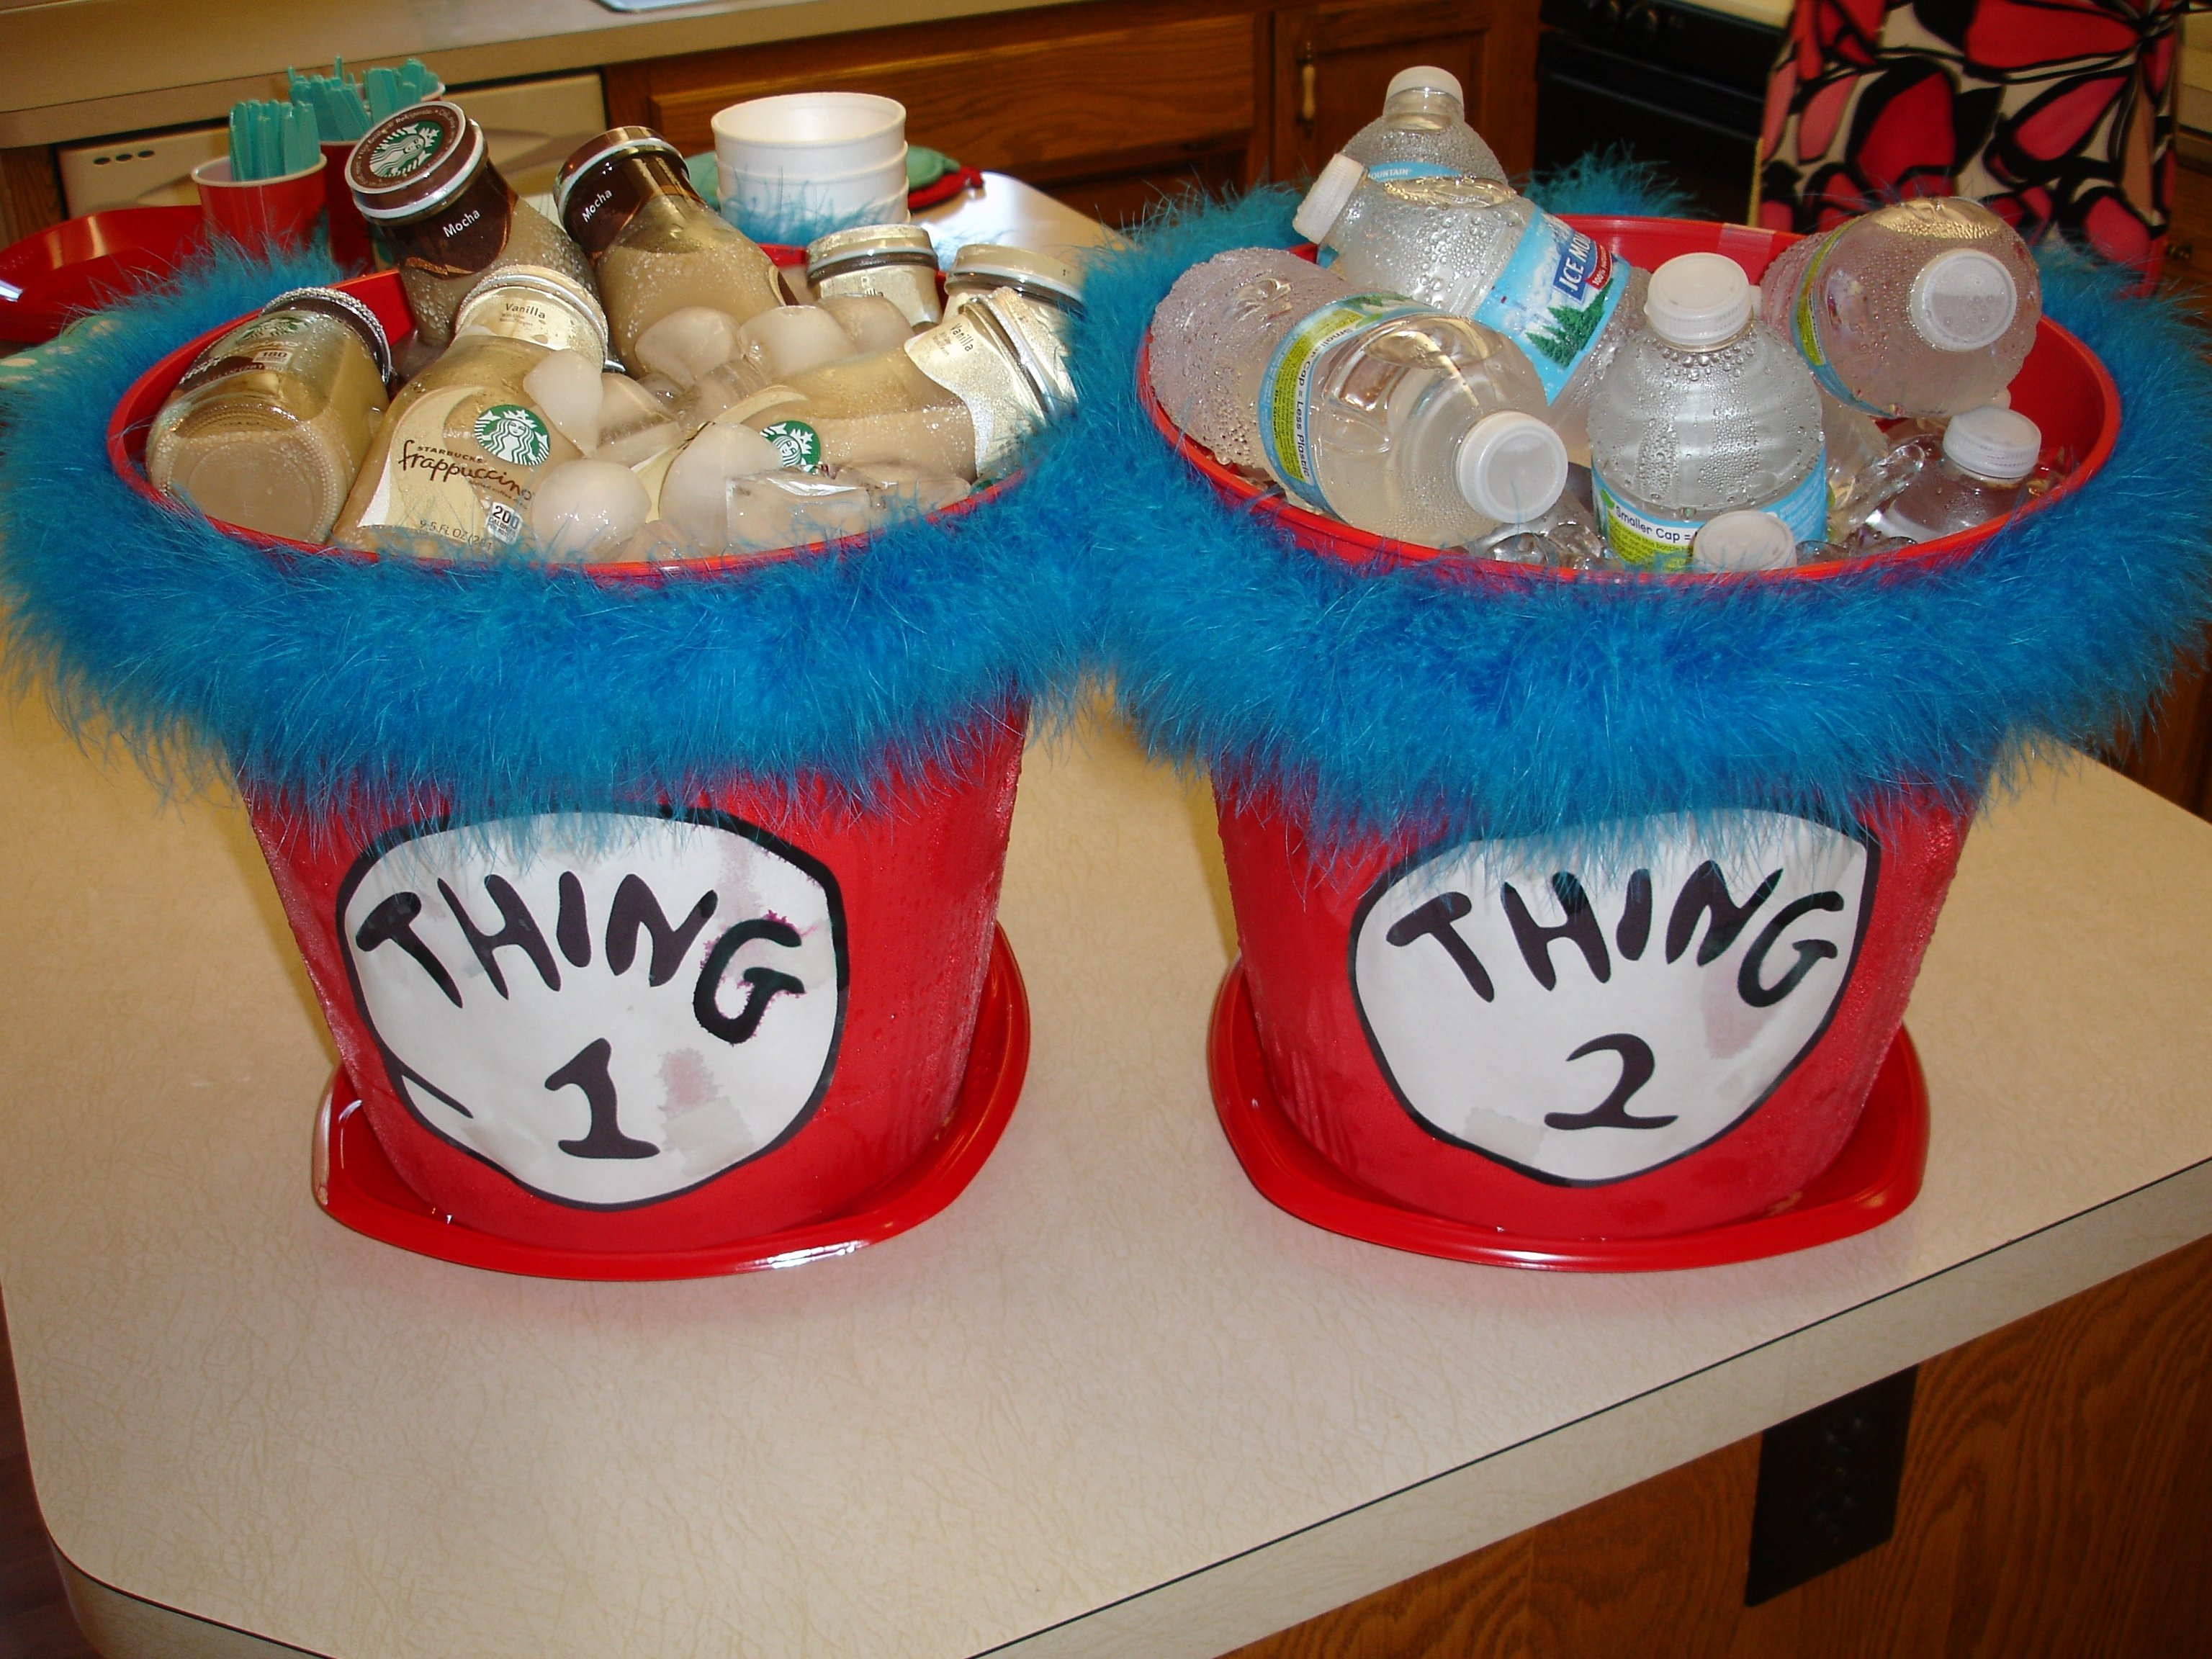 10 Beautiful Thing 1 Thing 2 Party Ideas